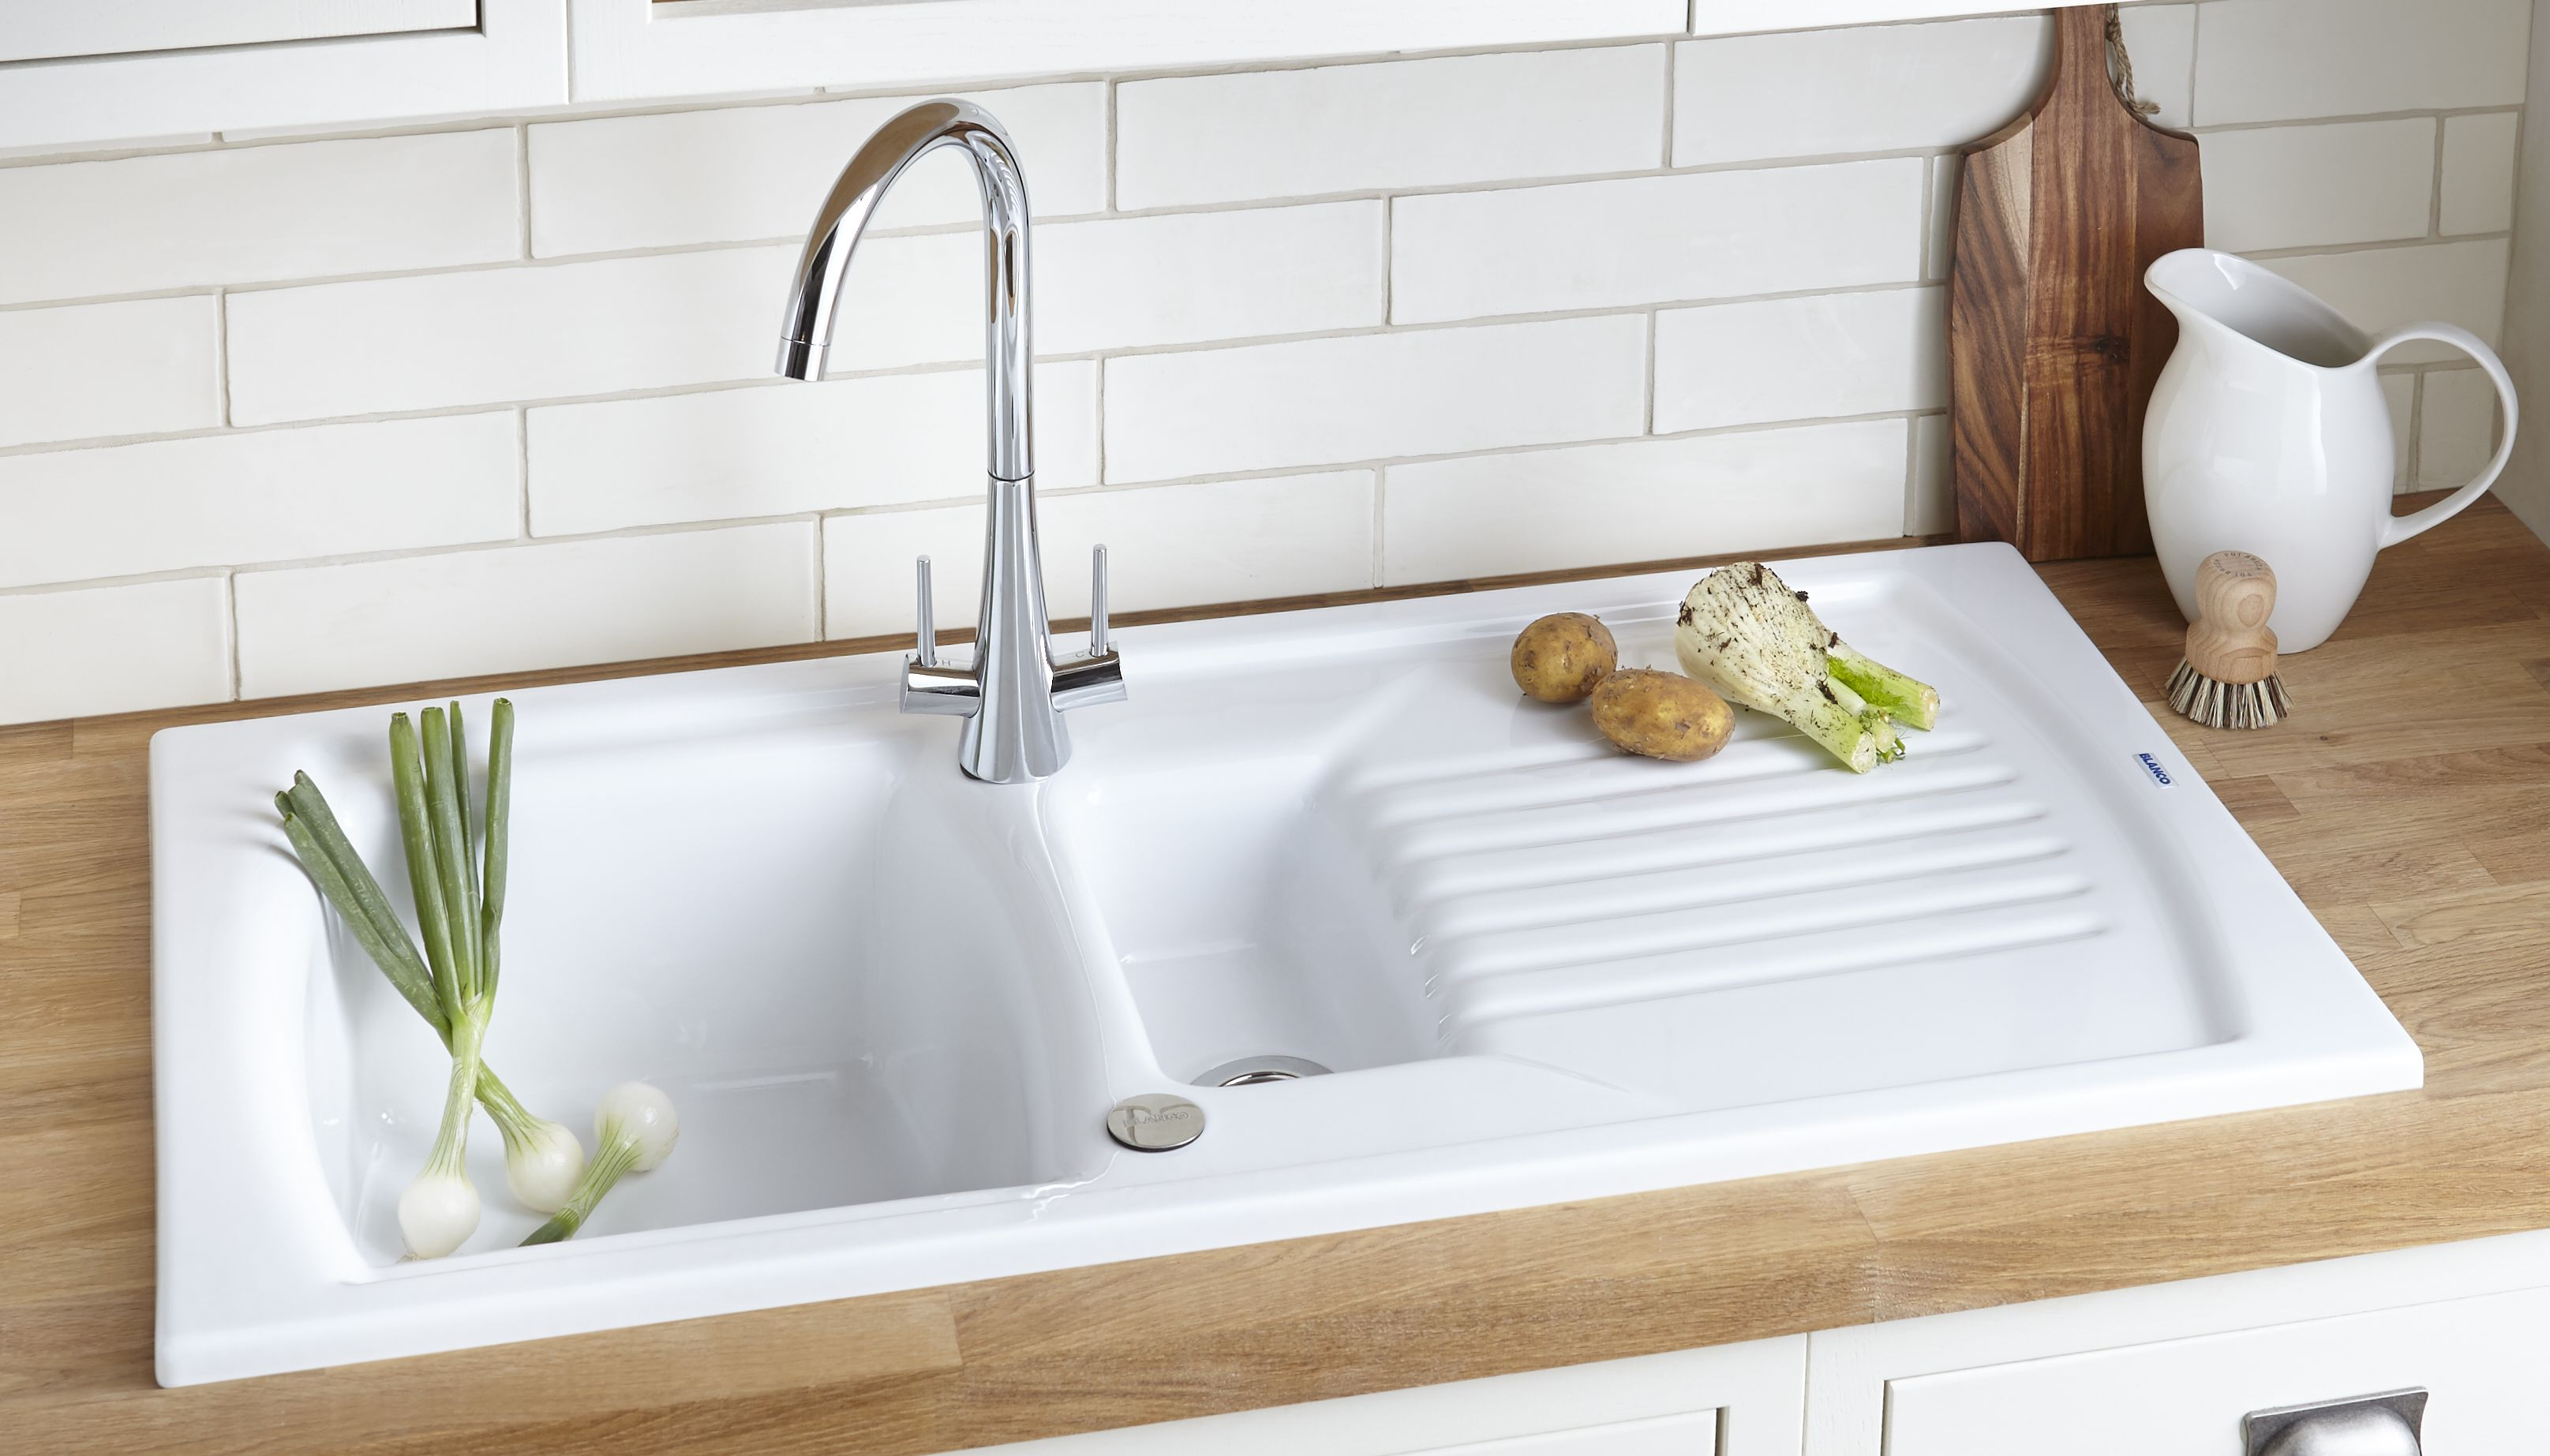 kitchen sinks b and q kitchen sink buying guide help amp ideas diy at b amp q 8587